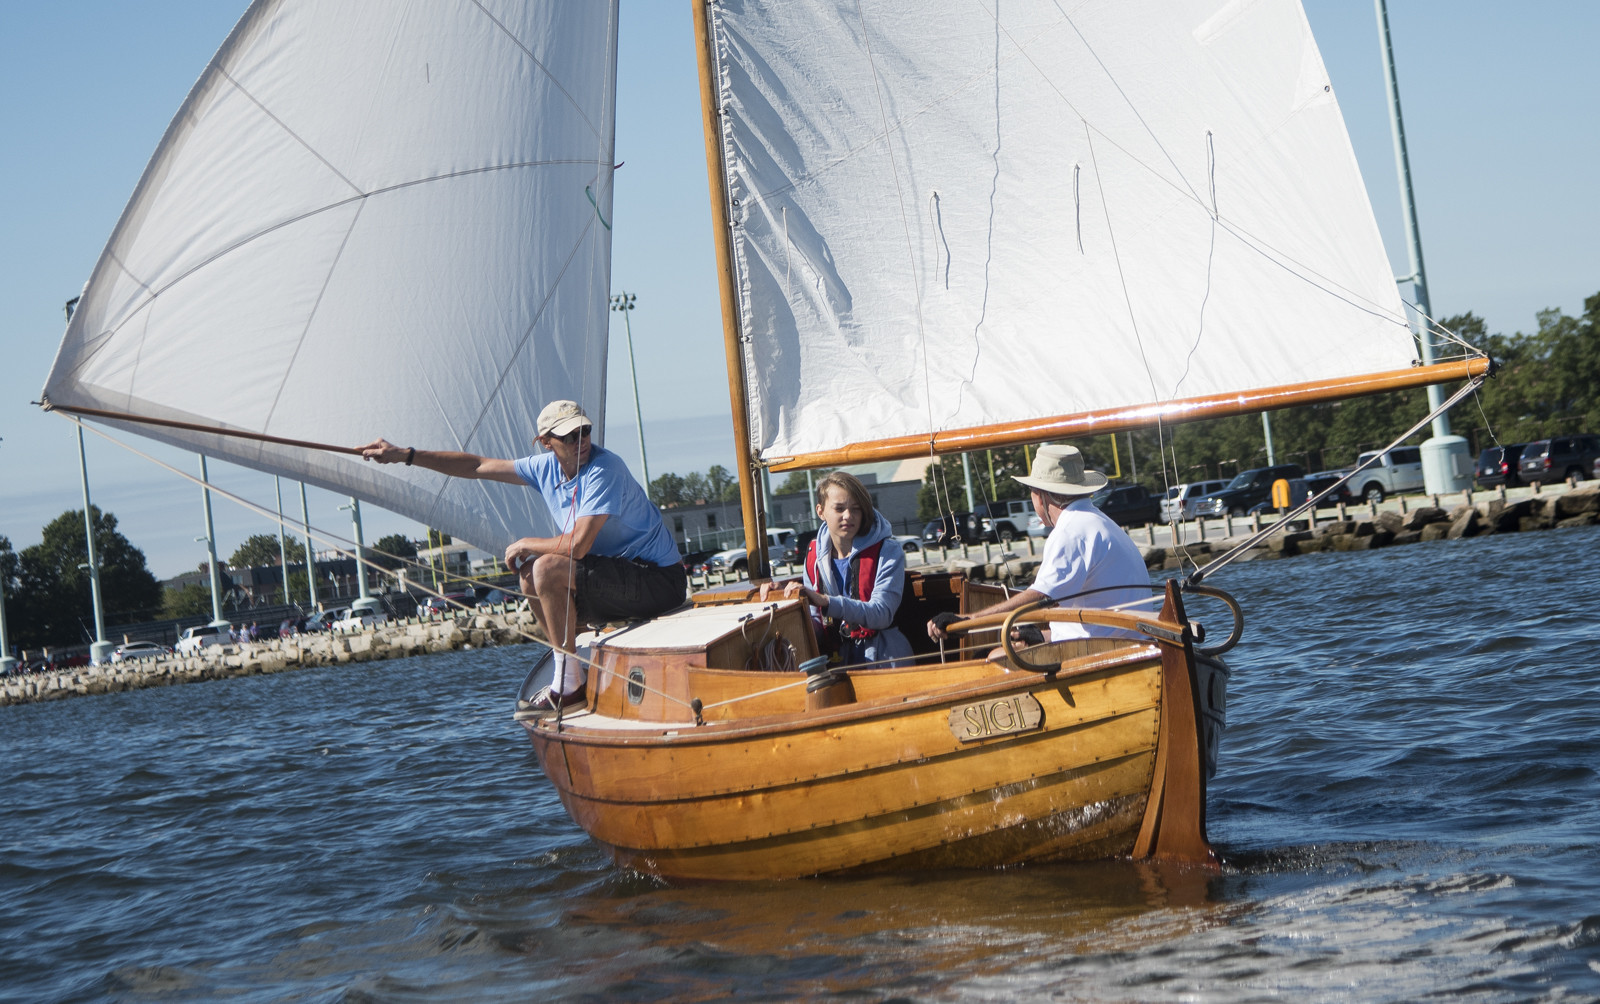 Classic Wooden Sailboat Rendezvous Race Capital Gazette